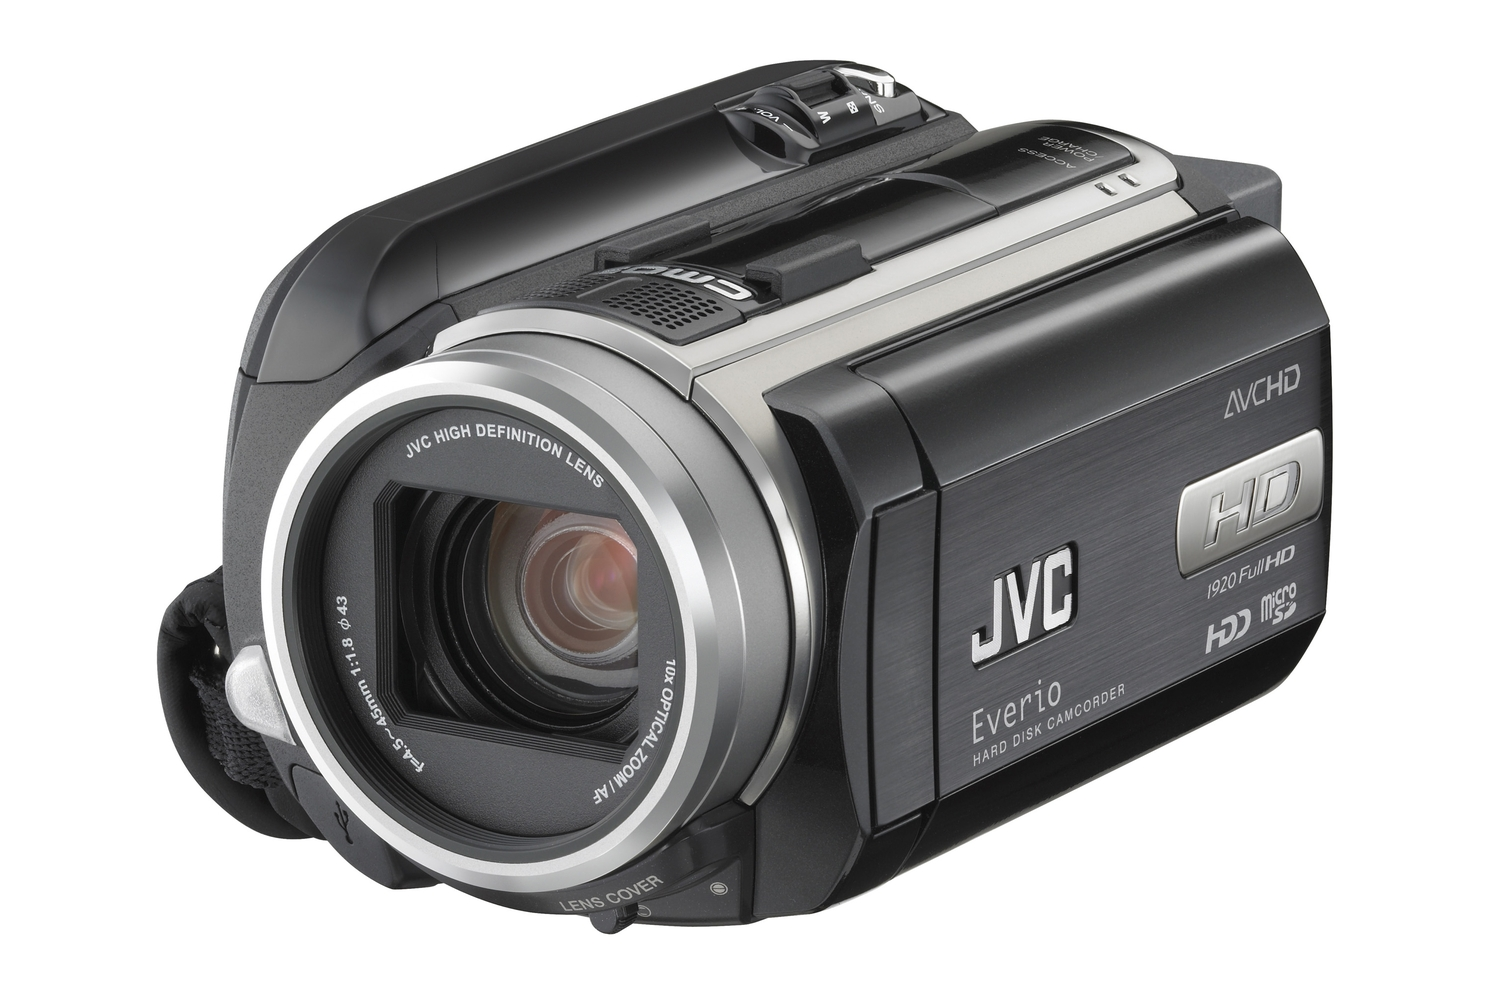 JVC Everio GZ-HD40 Review: High-definition JVC camcorder with 120GB hard  drive and MPEG-2 Transport Stream (TS) recording. - Digital Video - Digital  Video ...